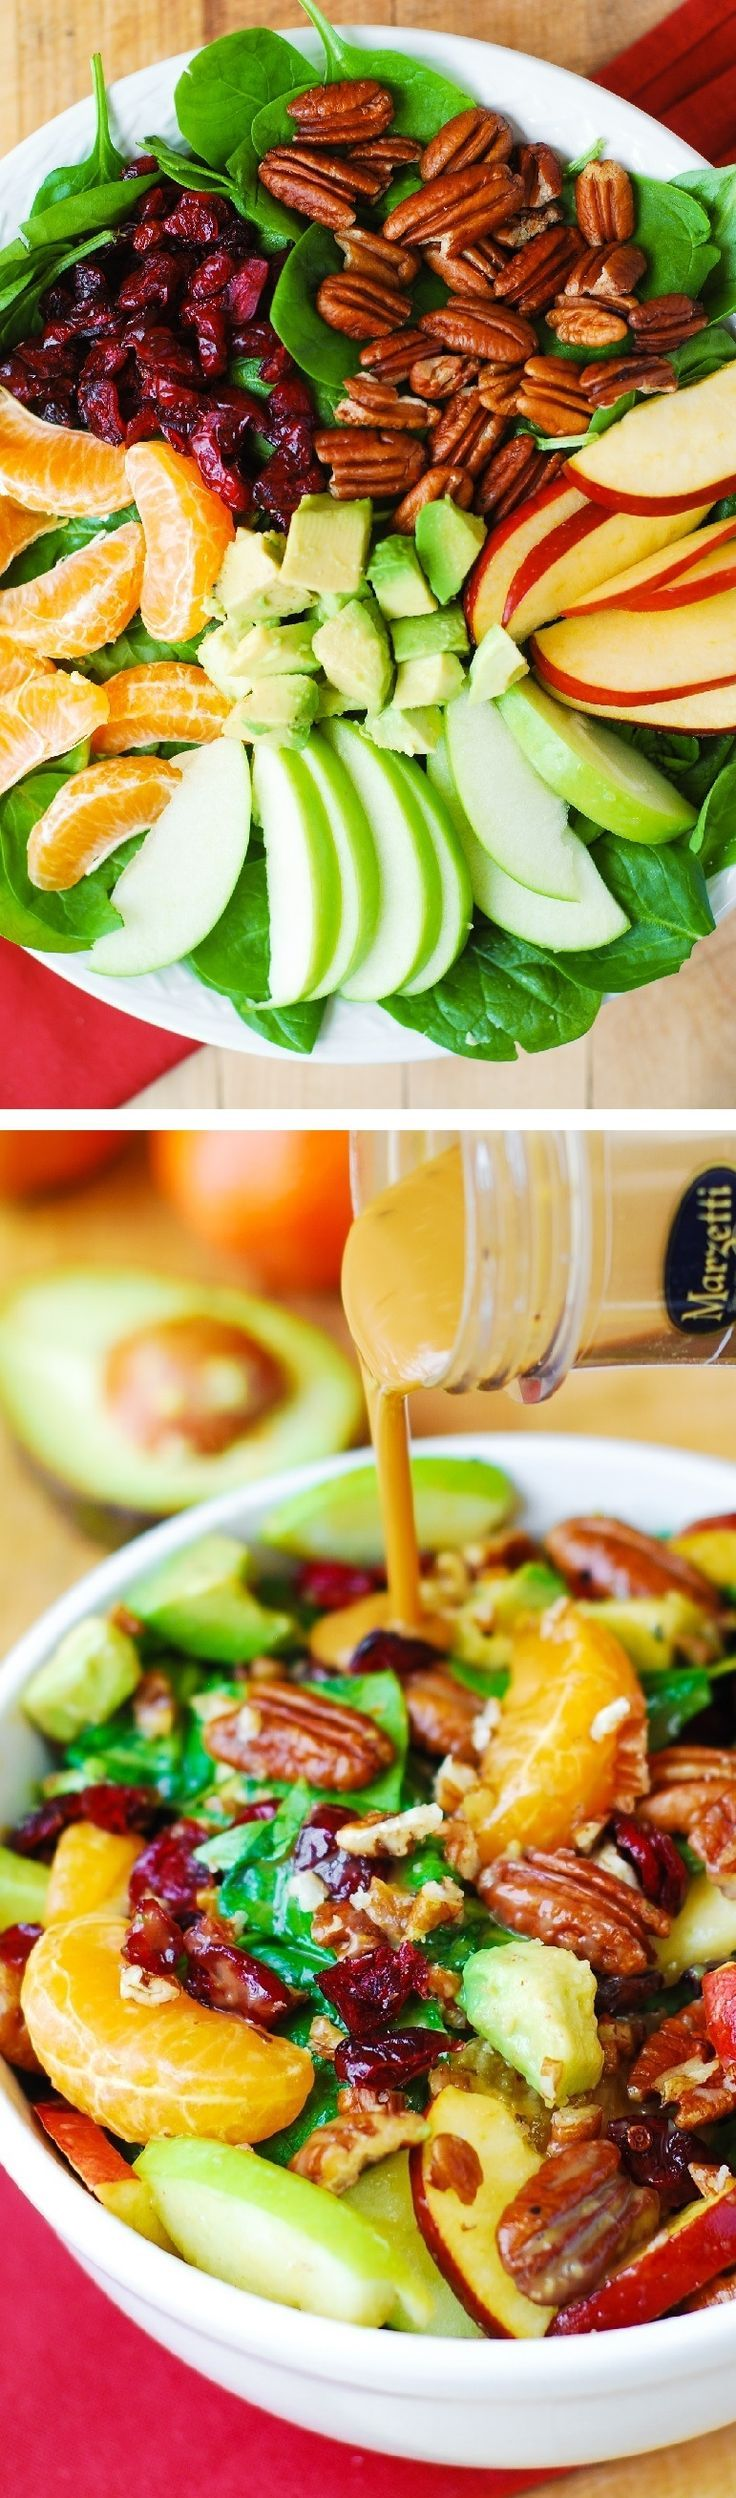 Apple Cranberry Spinach Salad Recipe. Ingredients include Pecans, Avocados (and Balsamic Vinaigrette Dressing) #glutenfree #vegetarian #salad #healthy